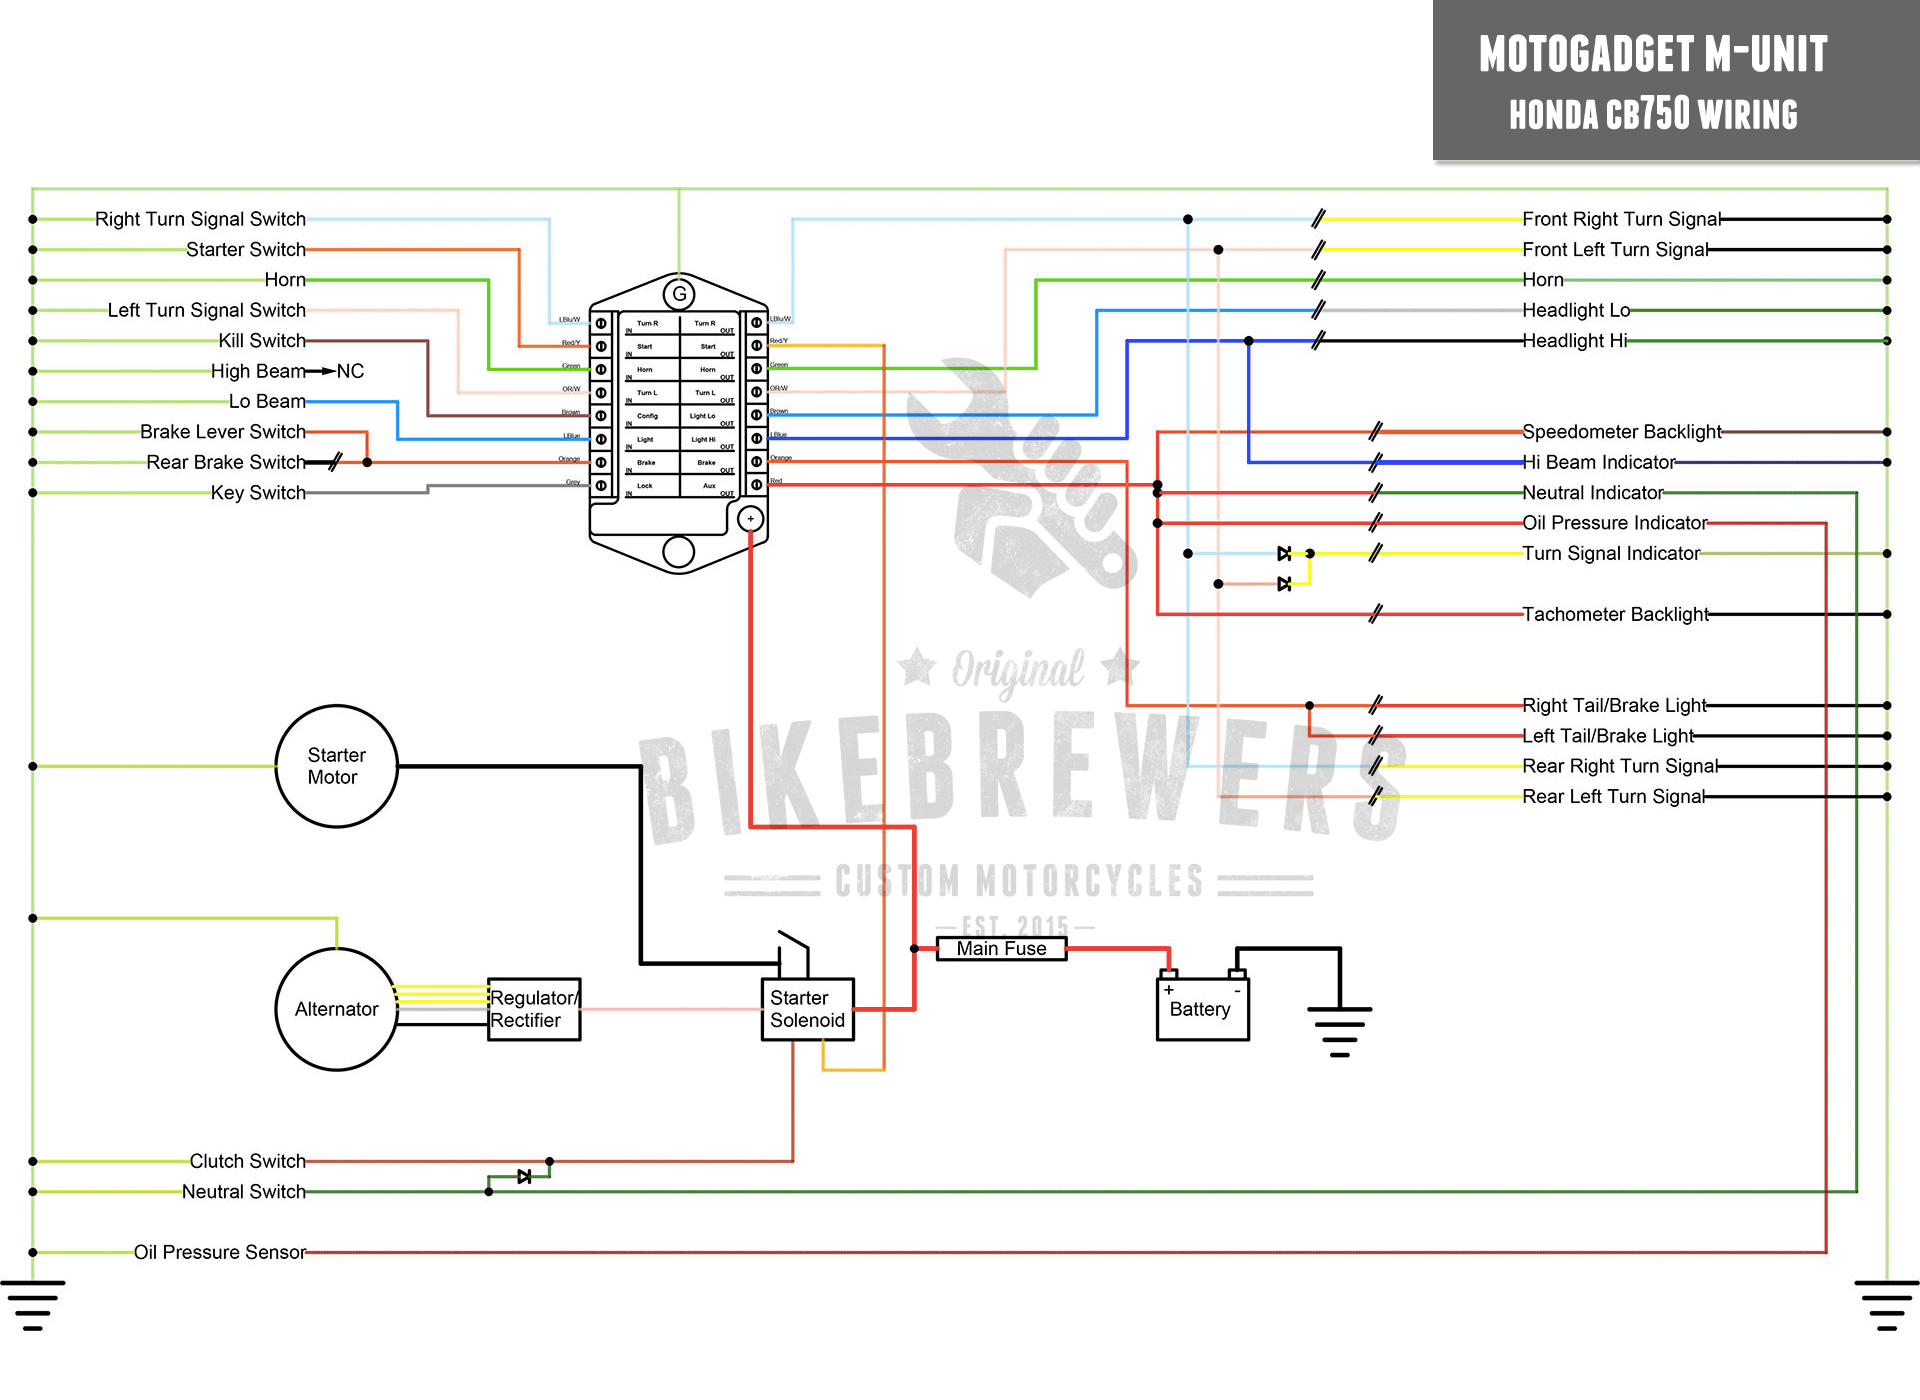 hight resolution of motogadget m unit wiring bikebrewers com davidson led headlight on 91 harley davidson starter solenoid diagram